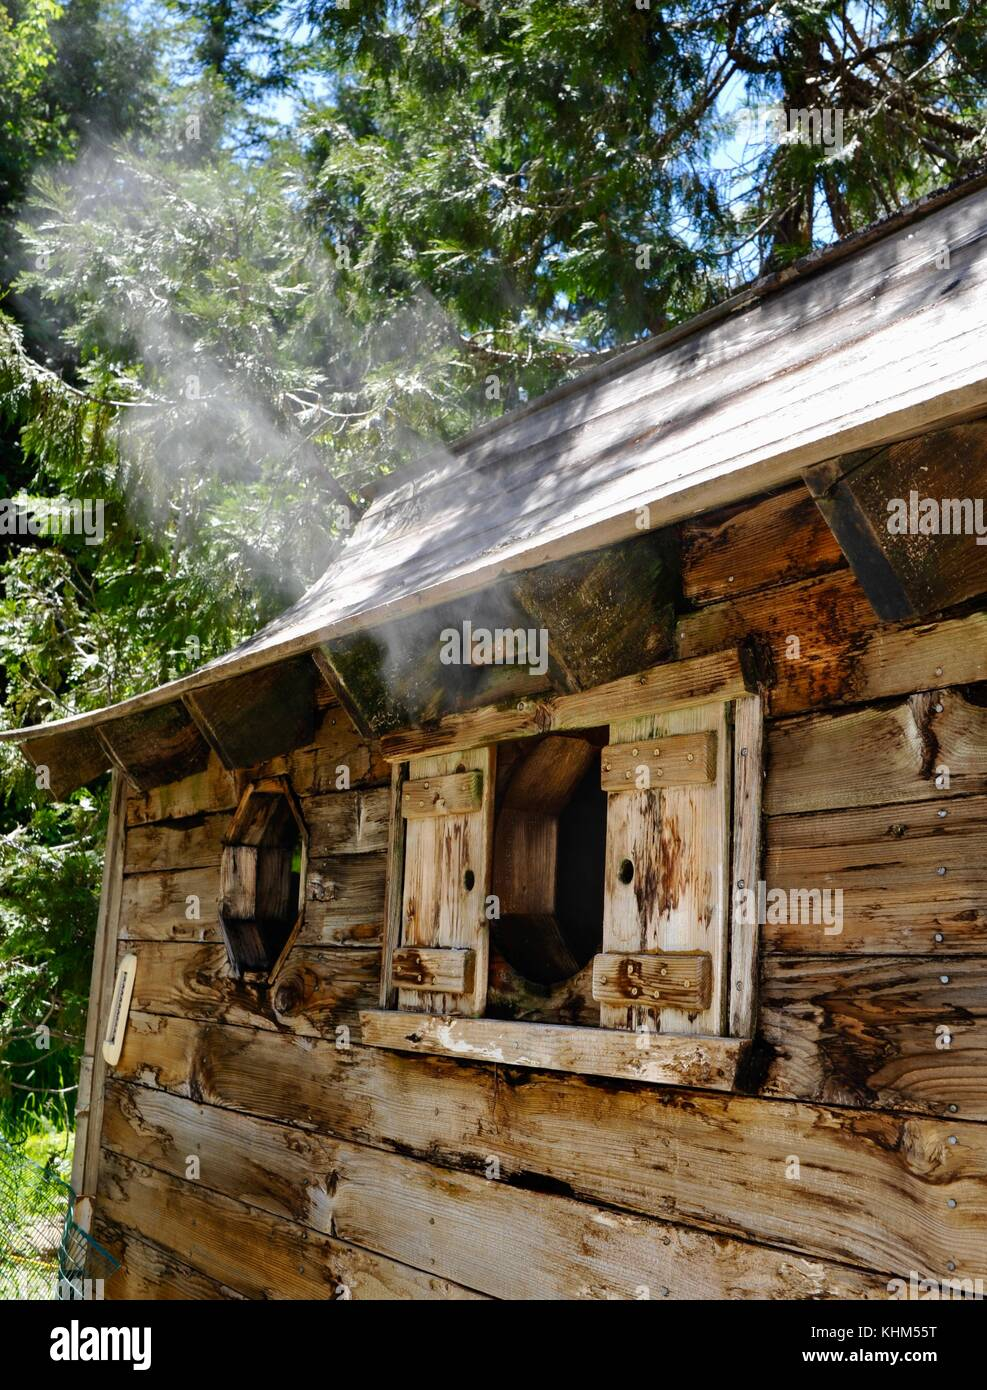 Natural wooden sauna from hot springs, with steam flowing through window, Breitenbush Hot Springs, adjacent to Mt. - Stock Image